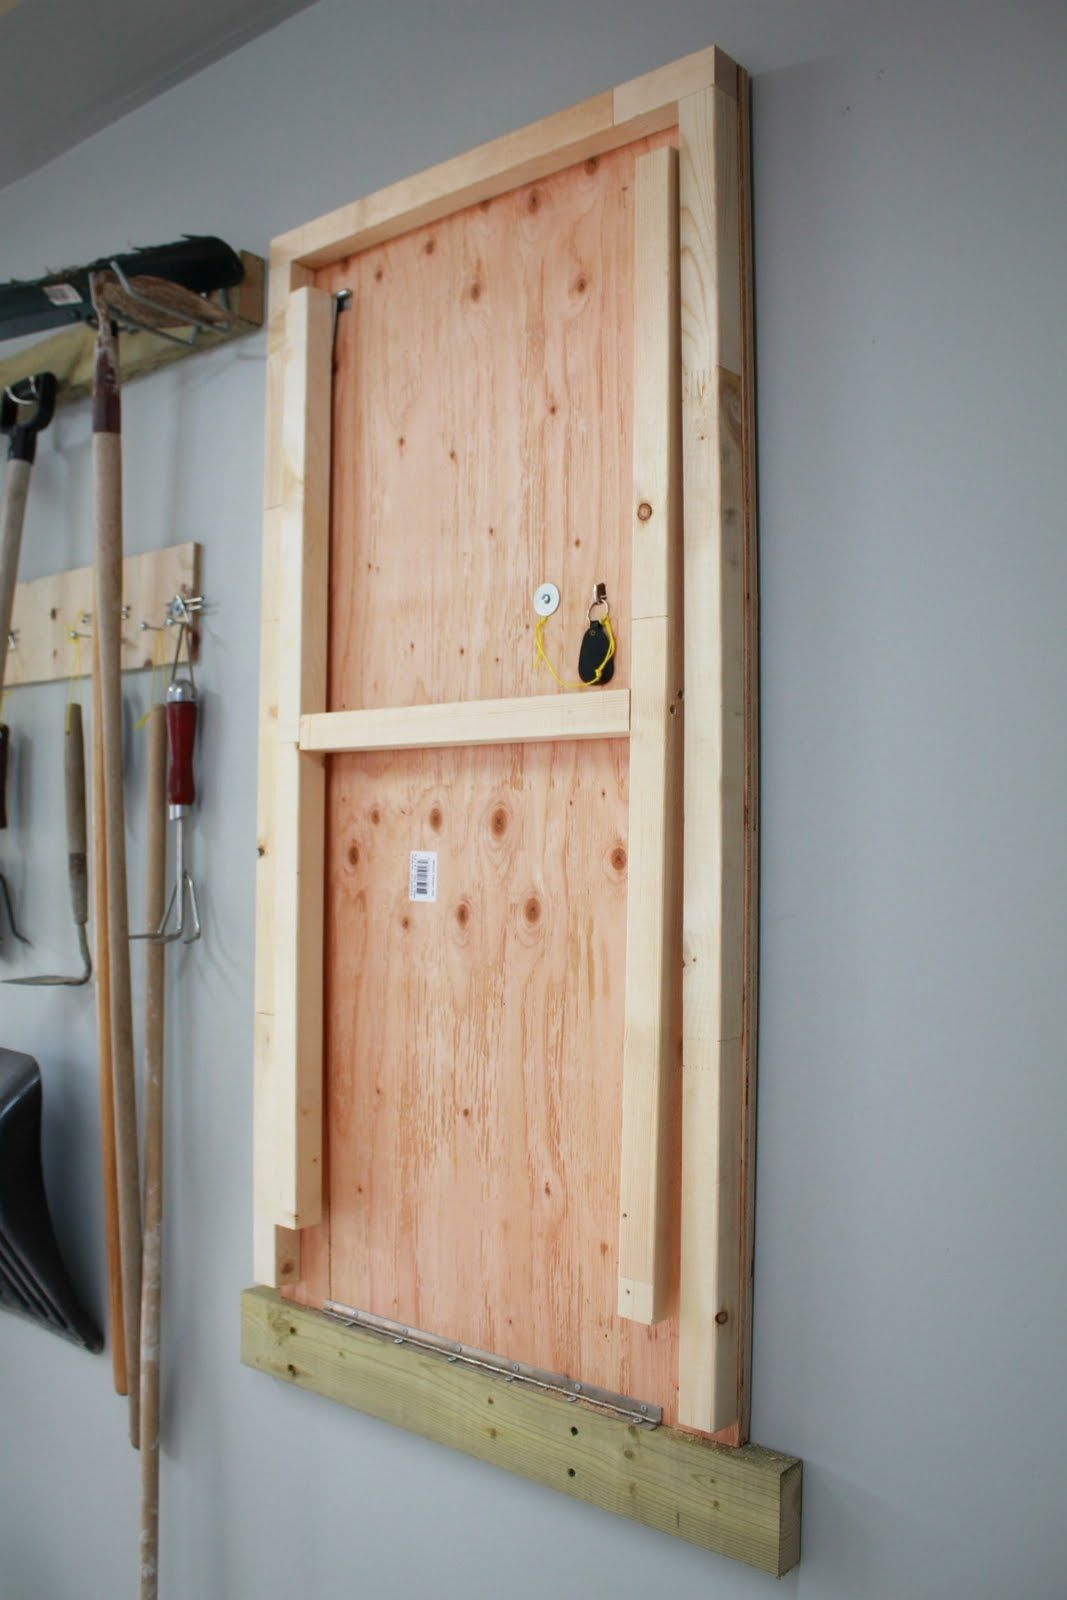 Wall Mounted Folding Workbench | Fold Down Workbench Plans Free | Collapsable Workbench